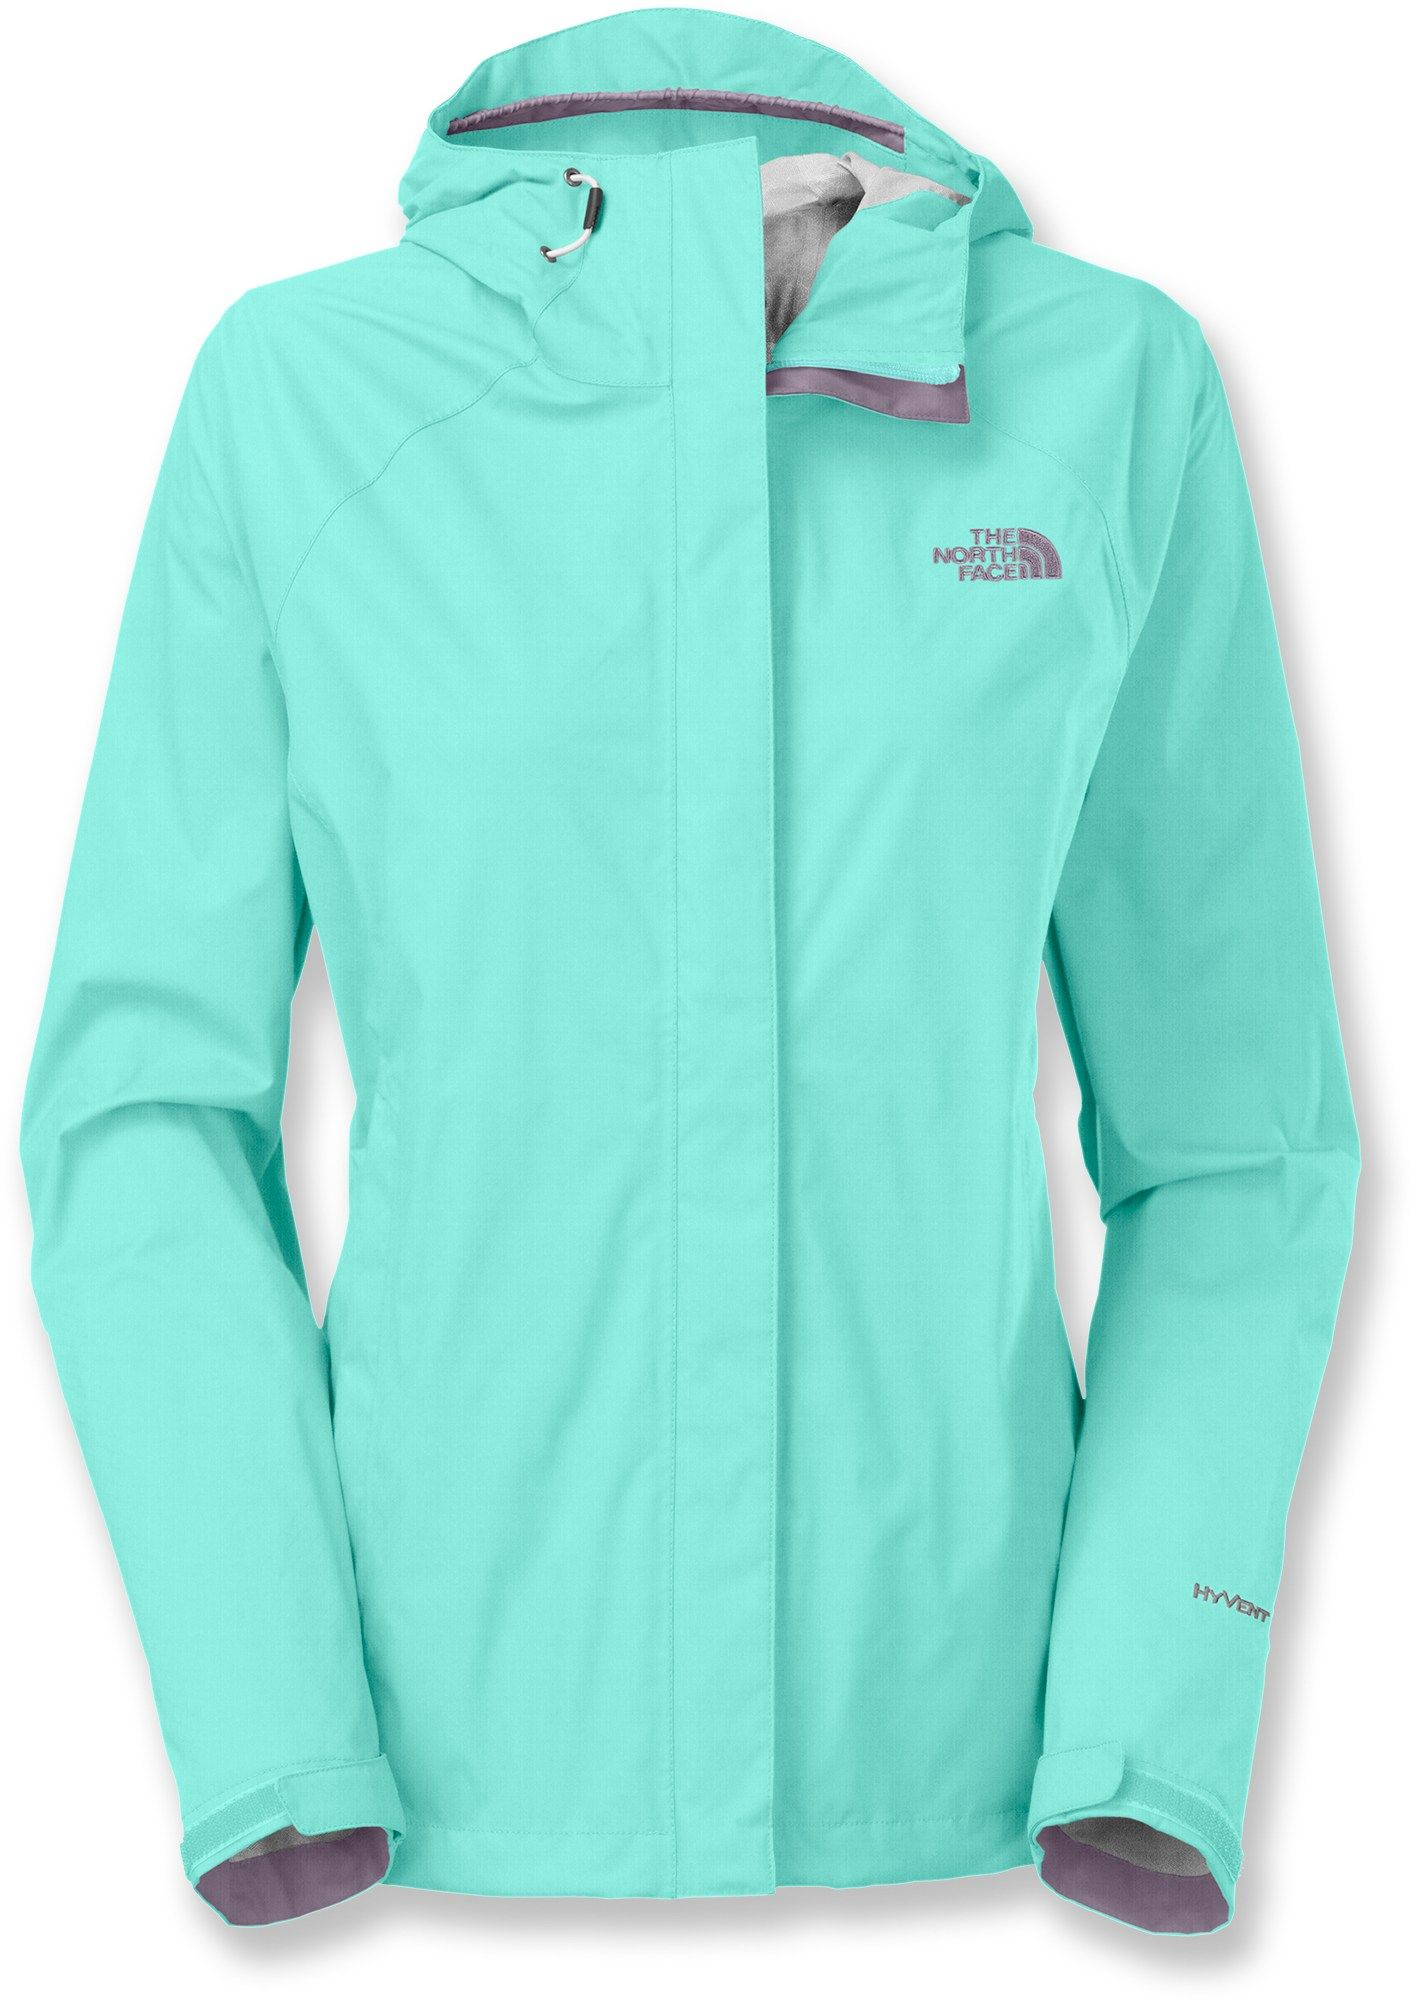 The North Face Venture Rain Jacket - Women's | REI Co-op ...